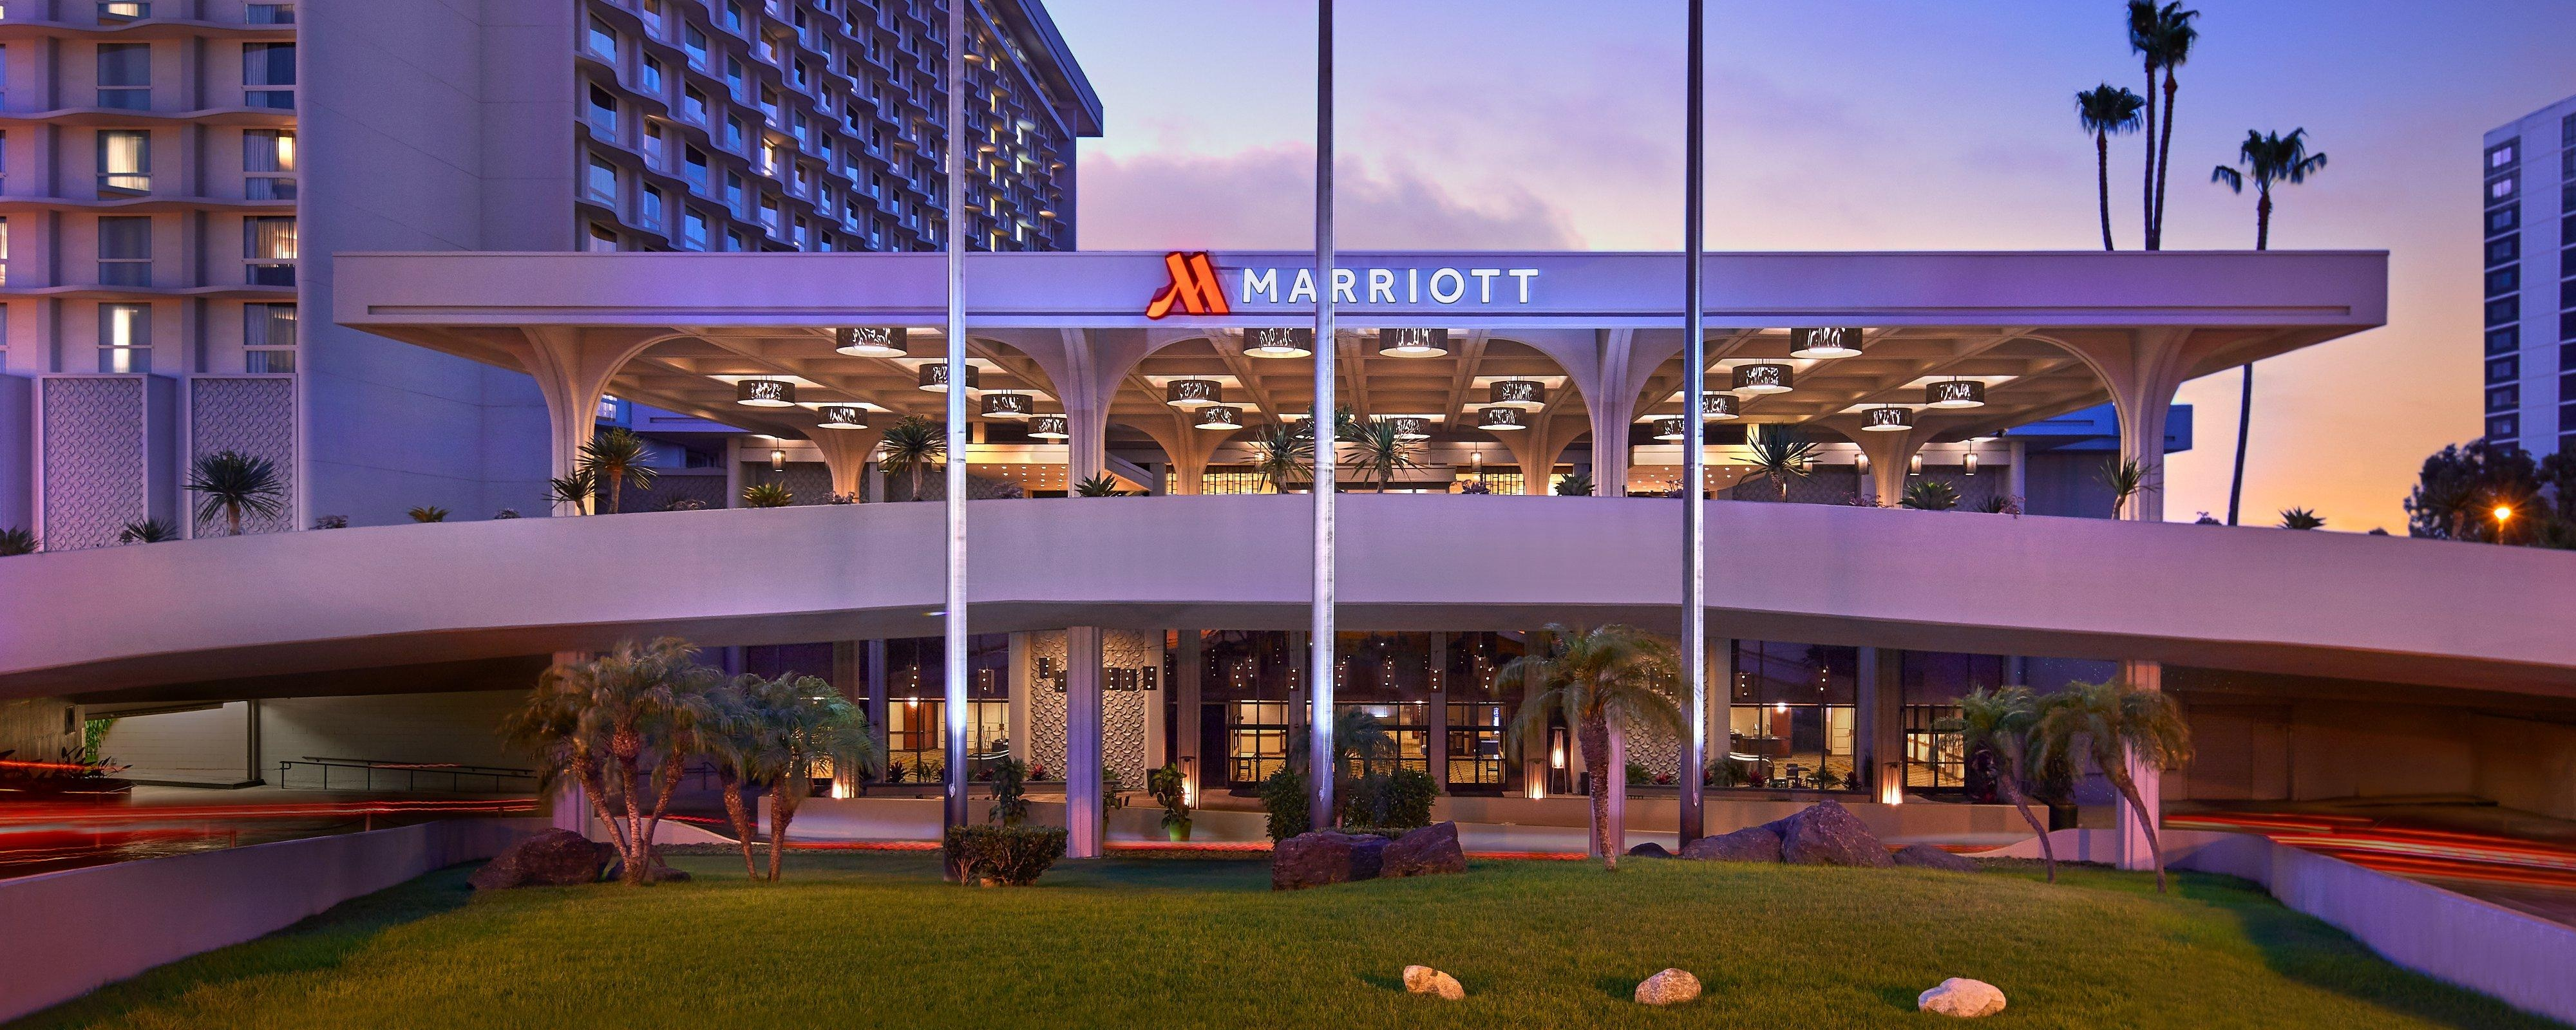 Hotel Near Lax Los Angeles Airport Marriott